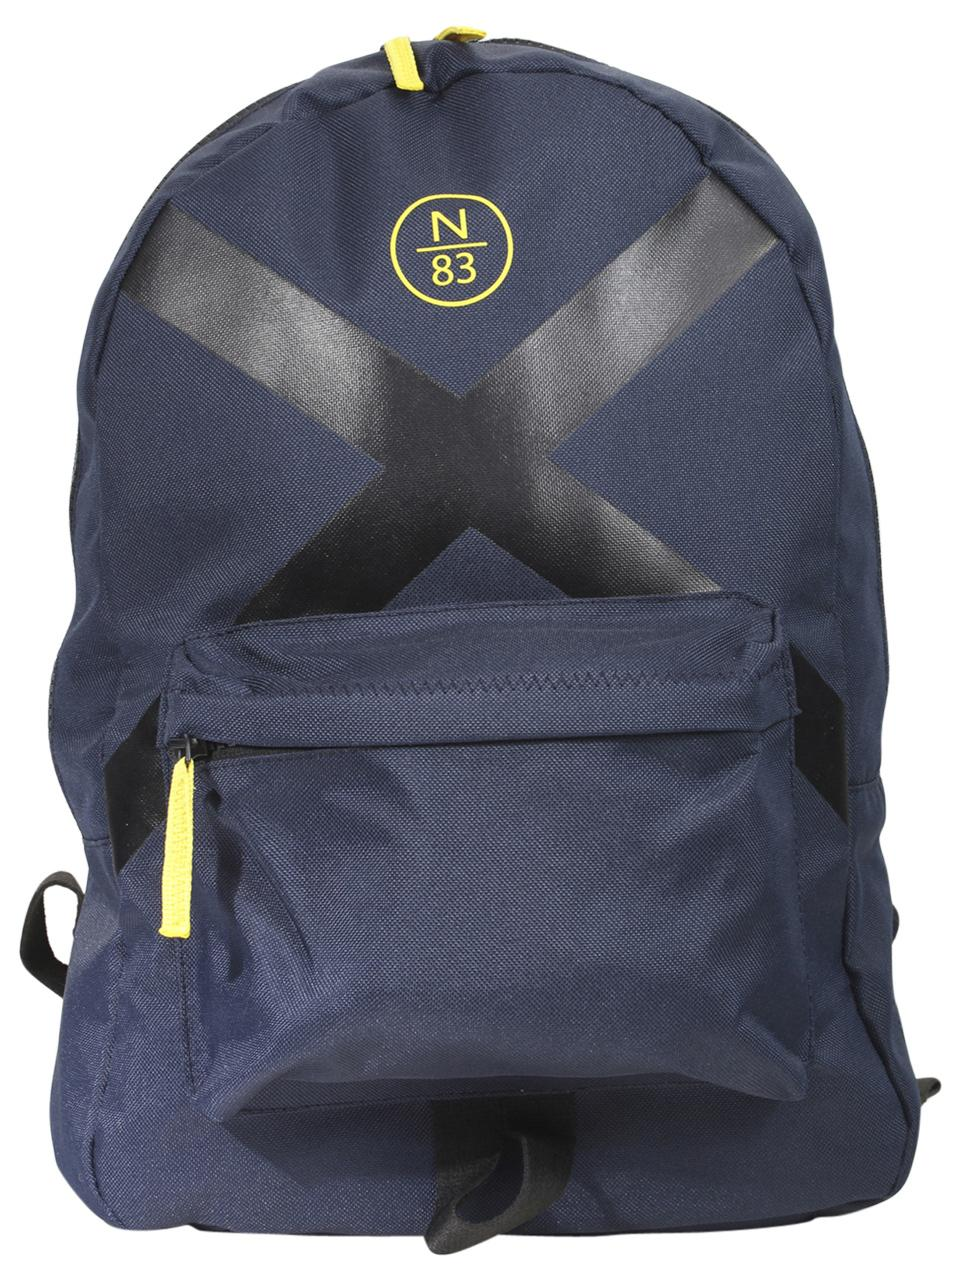 Nautica Boy's N-83 X-Class Water Repellant Backpack